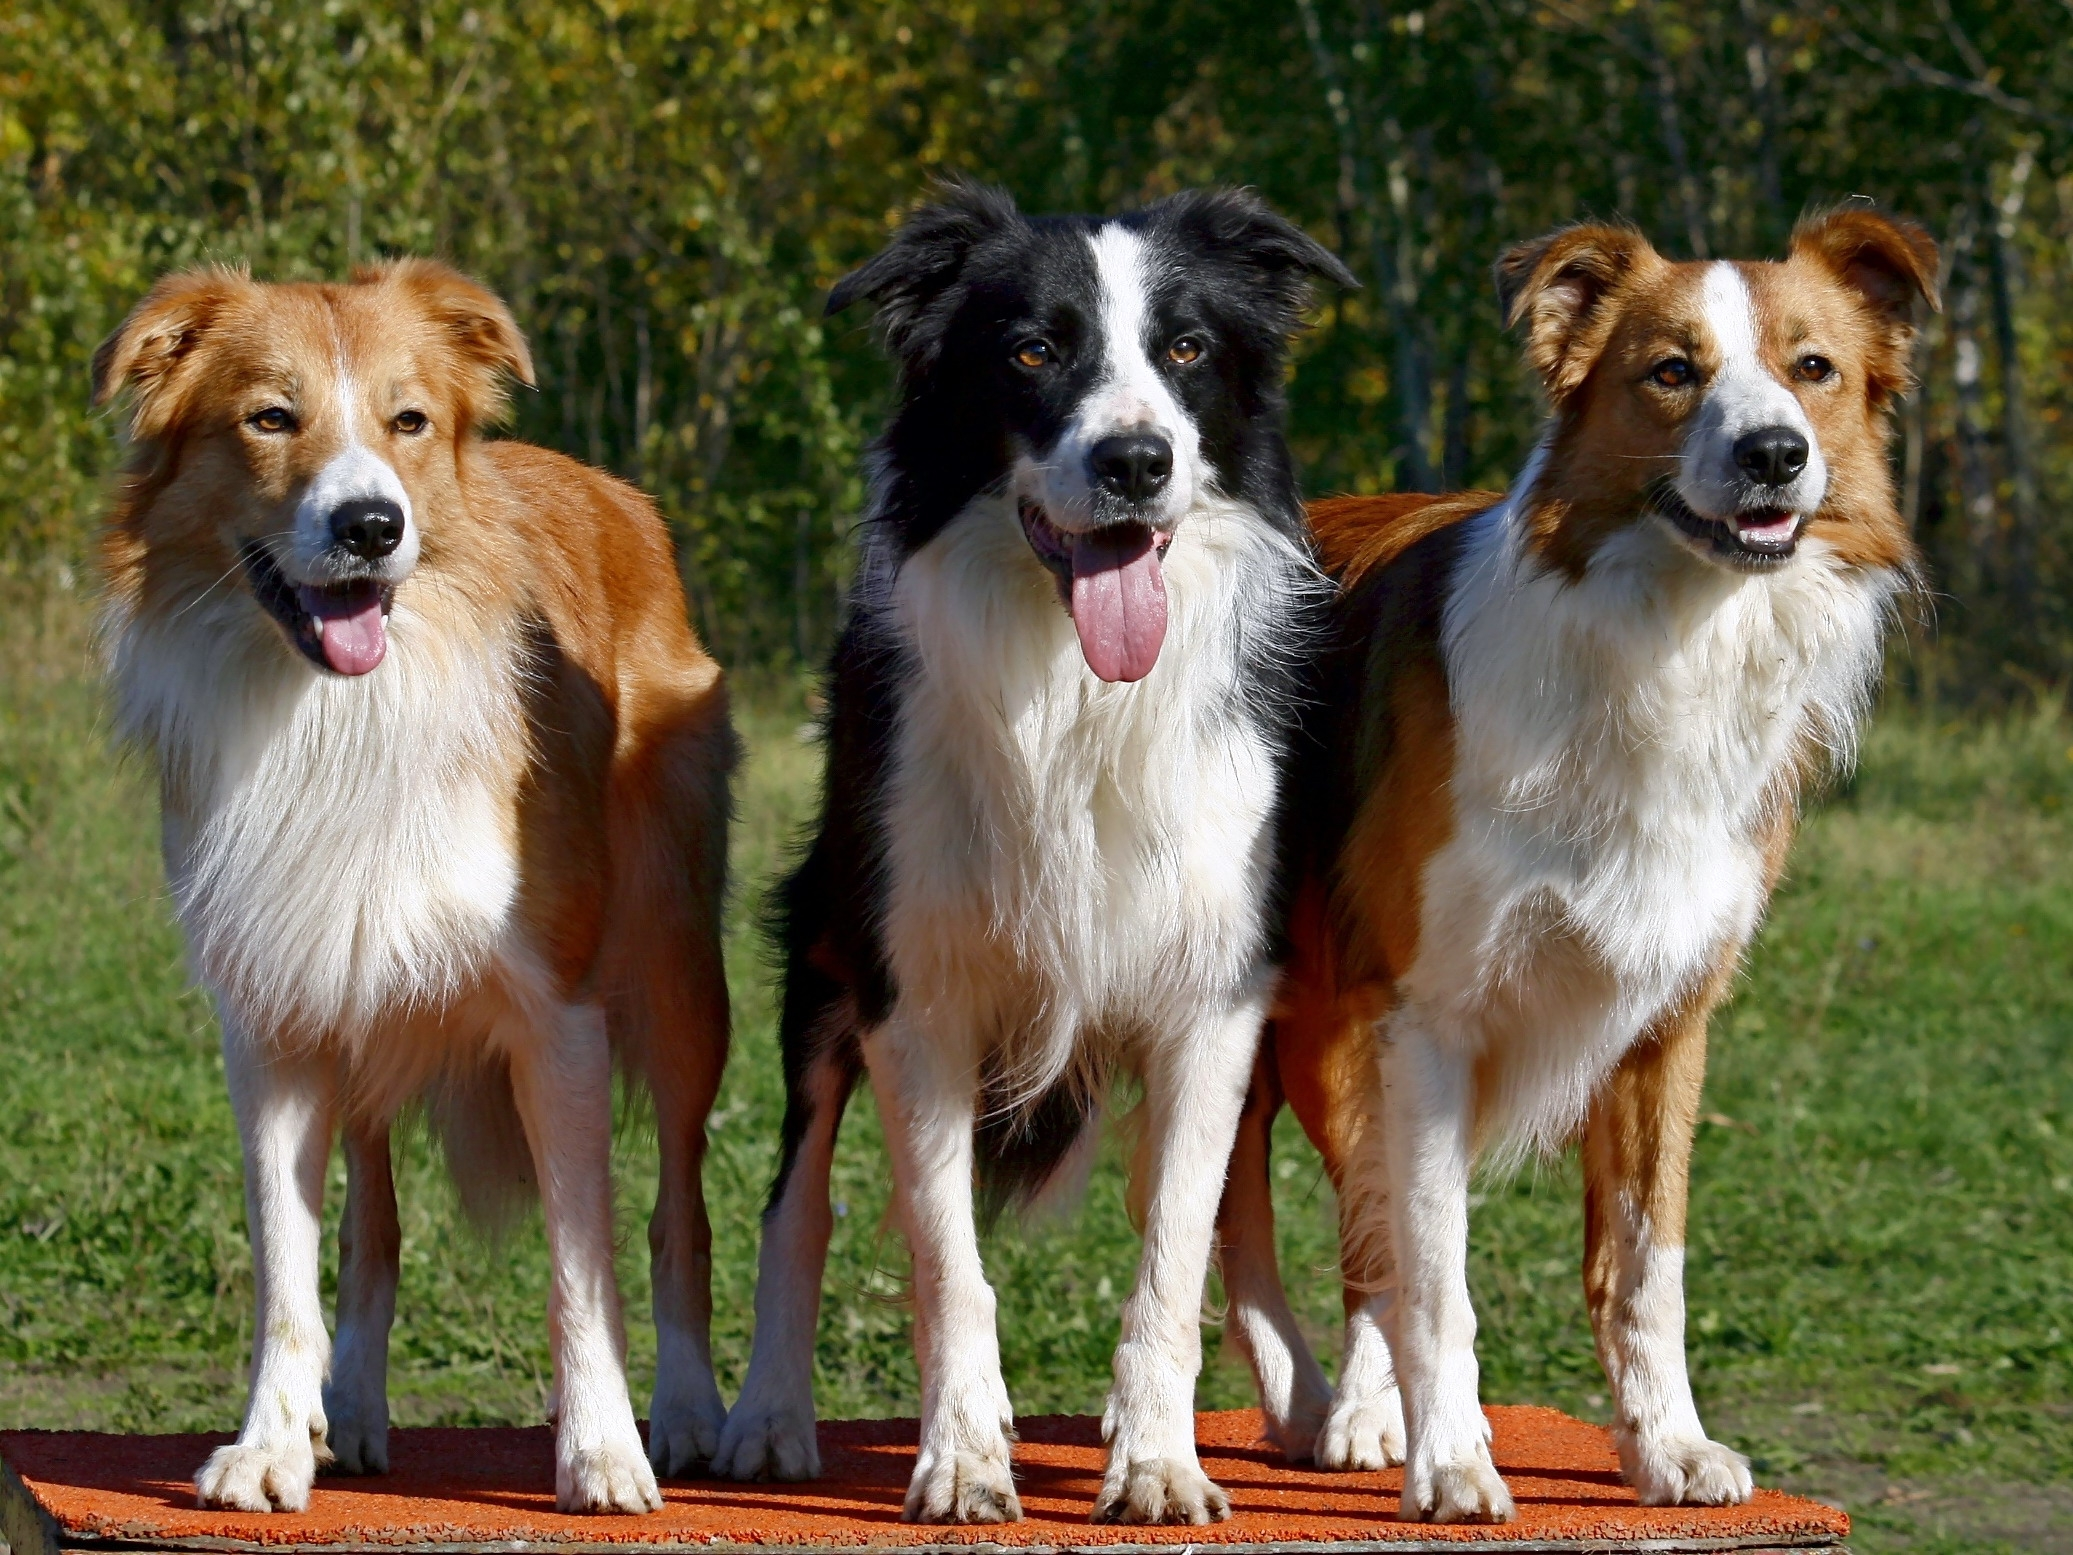 134613 download wallpaper Animals, Dogs, Three, Fluffy, To Stand, Stand, Expectation, Waiting screensavers and pictures for free